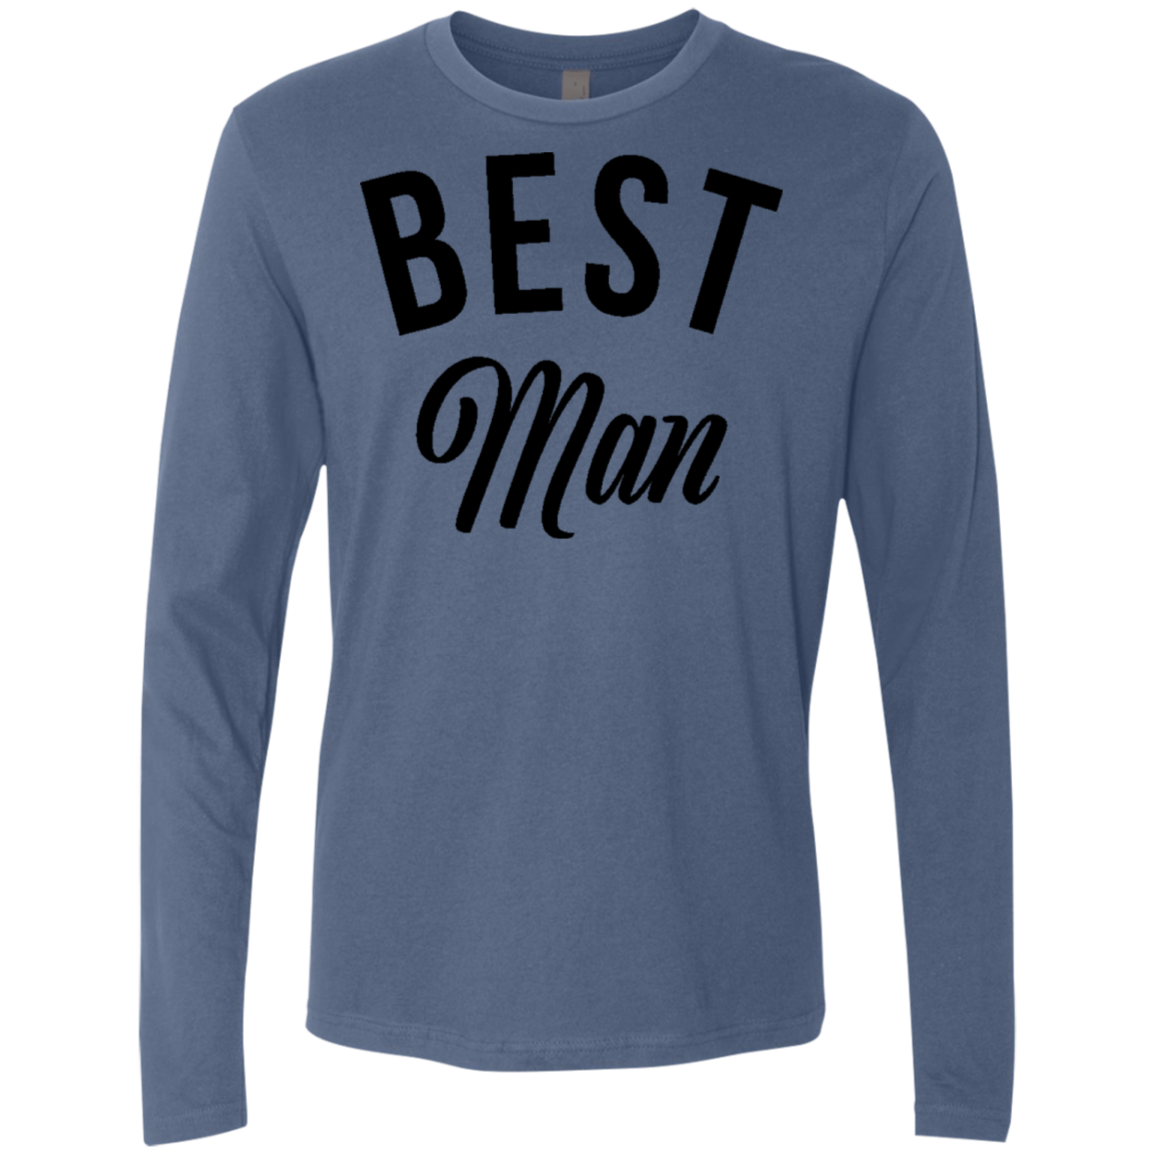 Best Man Men's Long Sleeve Tee